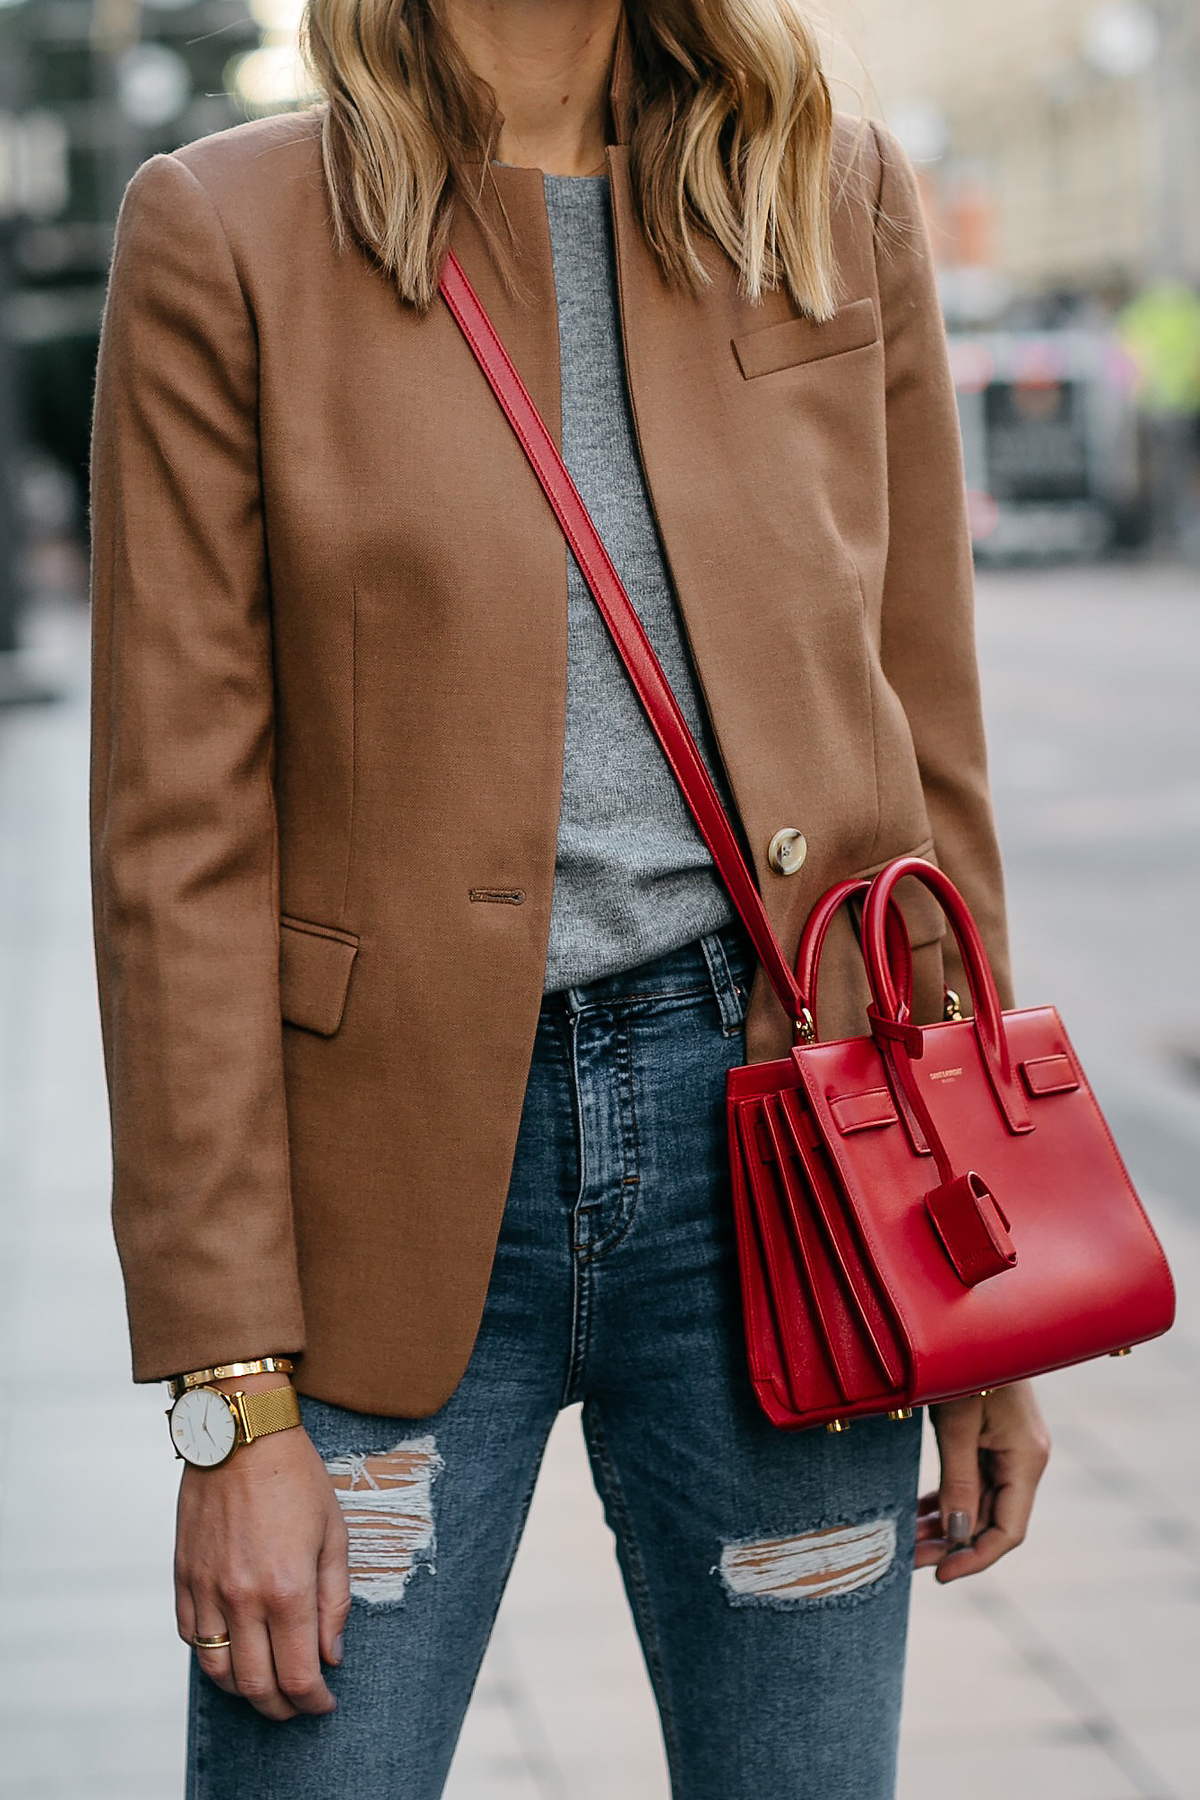 Jcrew Camel Blazer Grey Sweater Ripped Denim Jeans Saint Laurent Sac De Jour Nano Red Bag Fashion Jackson Dallas Blogger Fashion Blogger Street Style